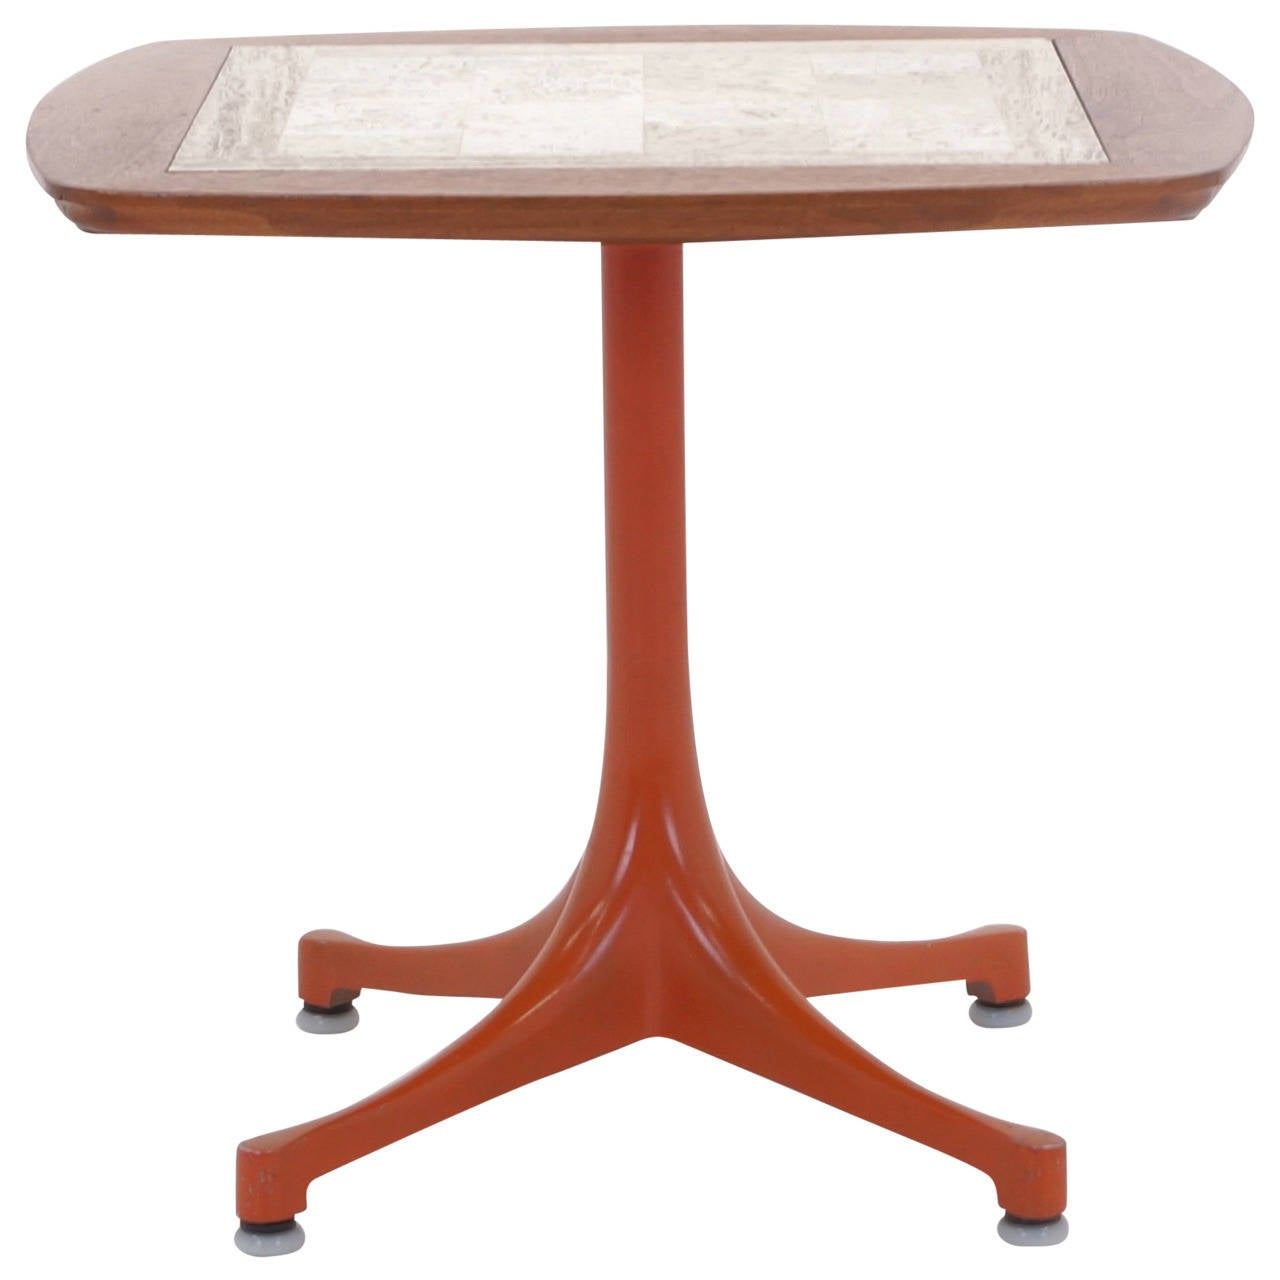 Rare Early Original George Nelson Swag Leg Side Table